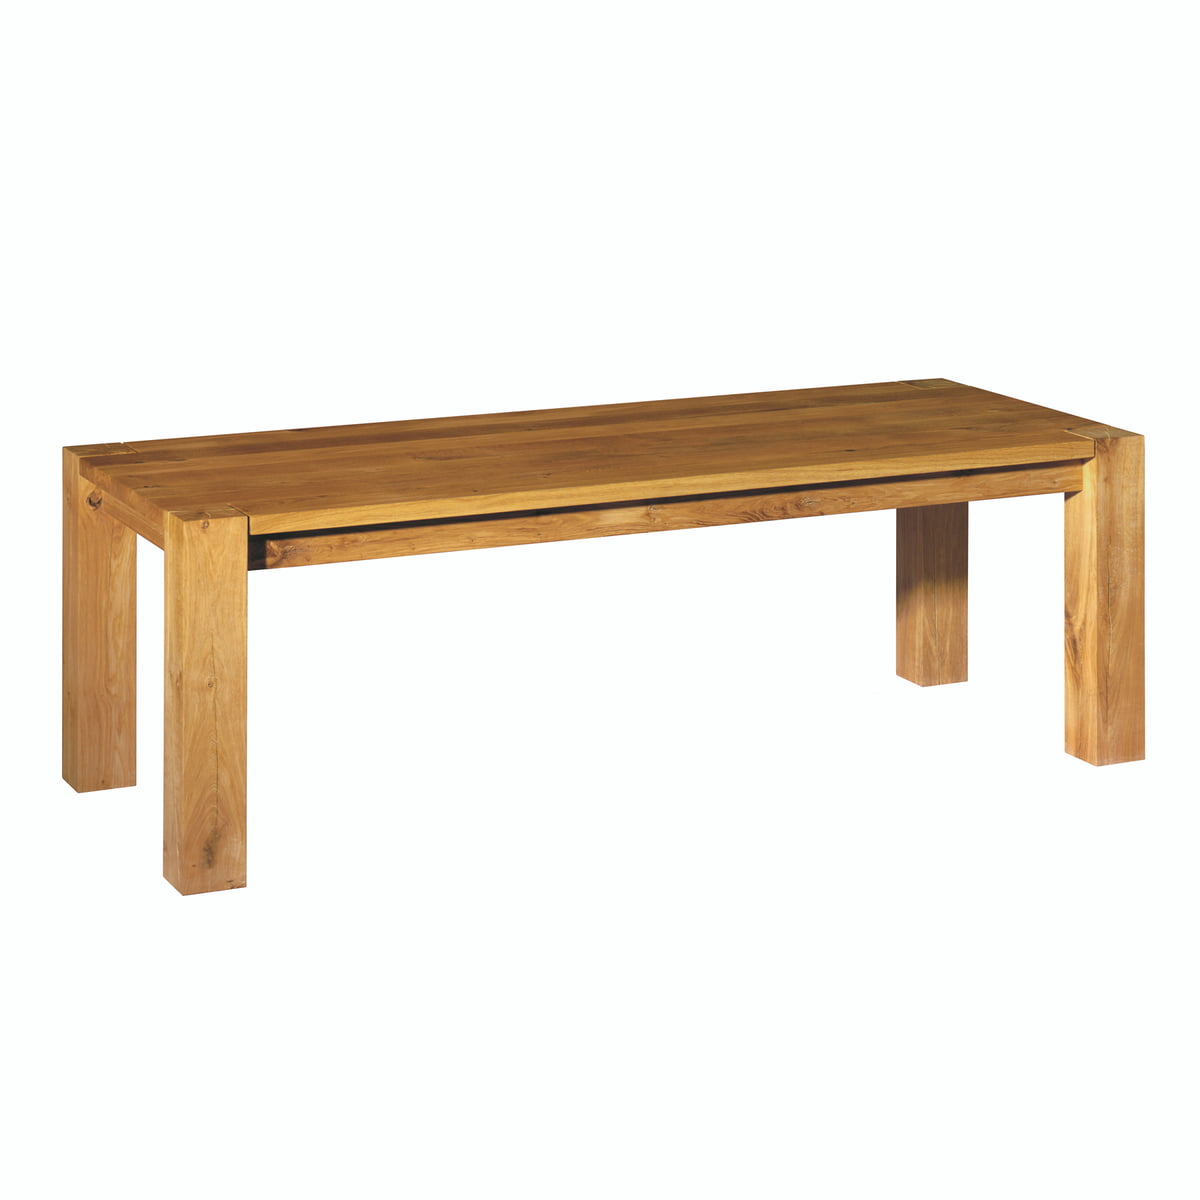 Solid wooden Bigfoot table by e15 in our shop